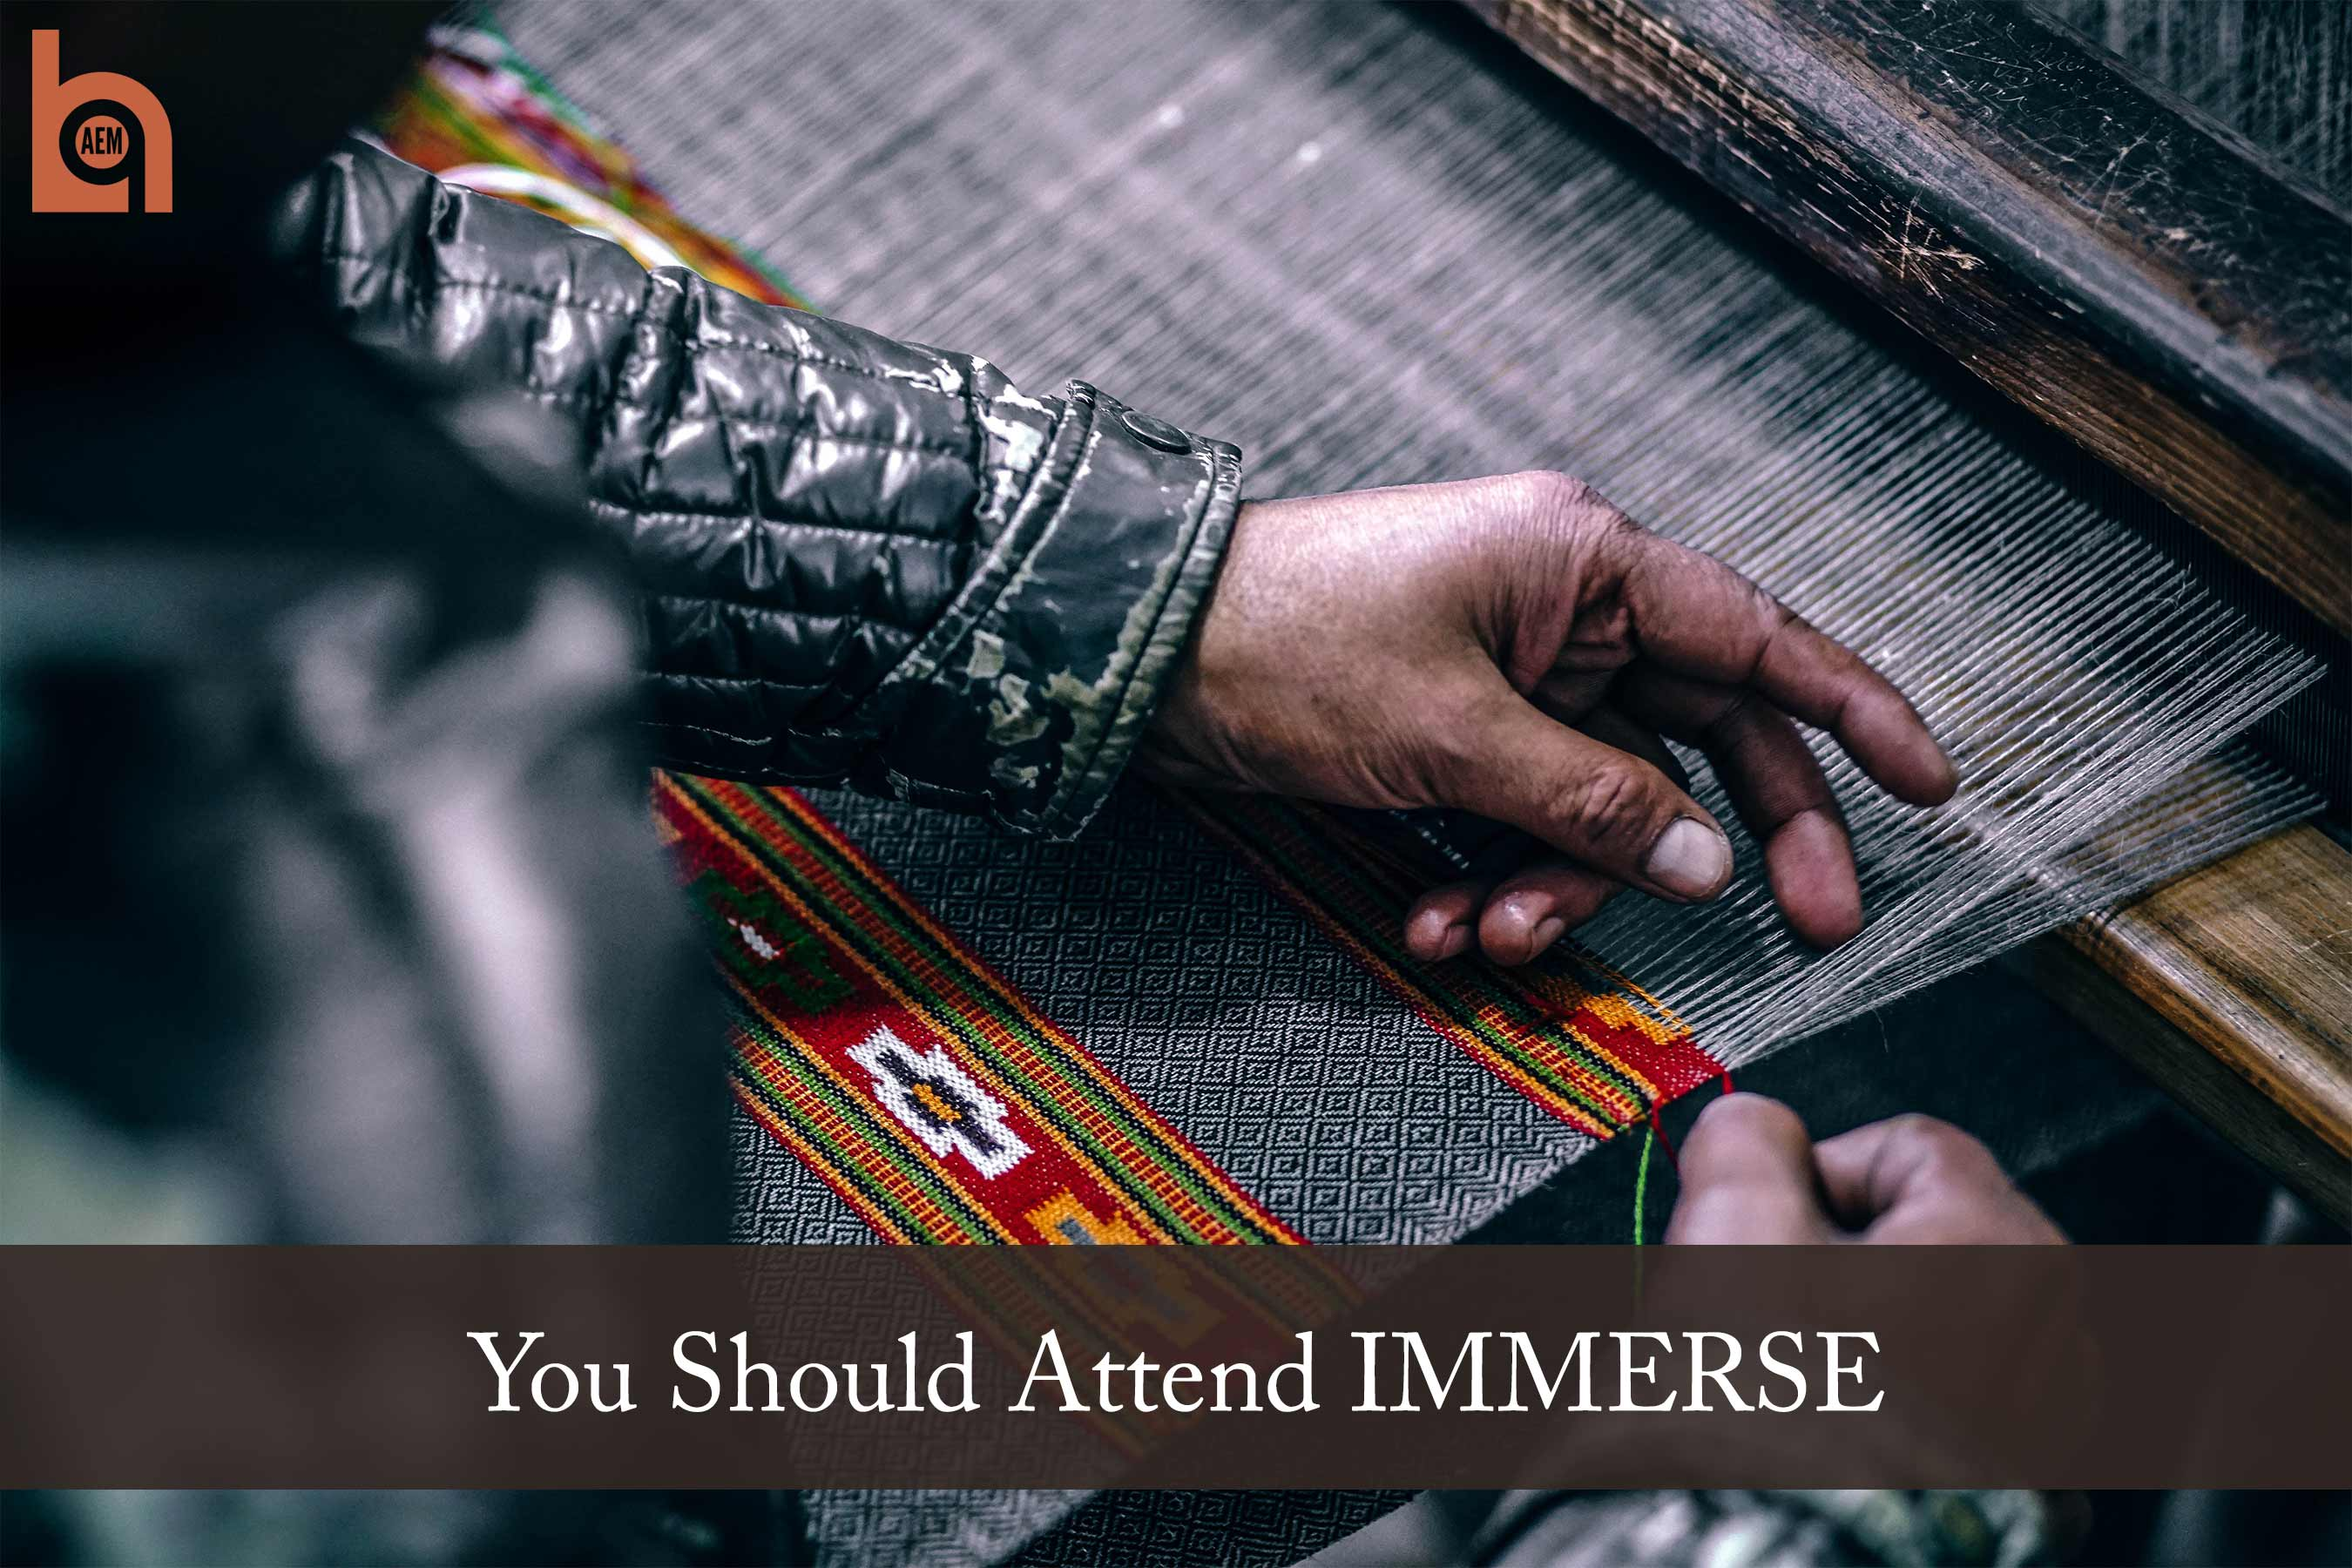 You Should Attend IMMERSE